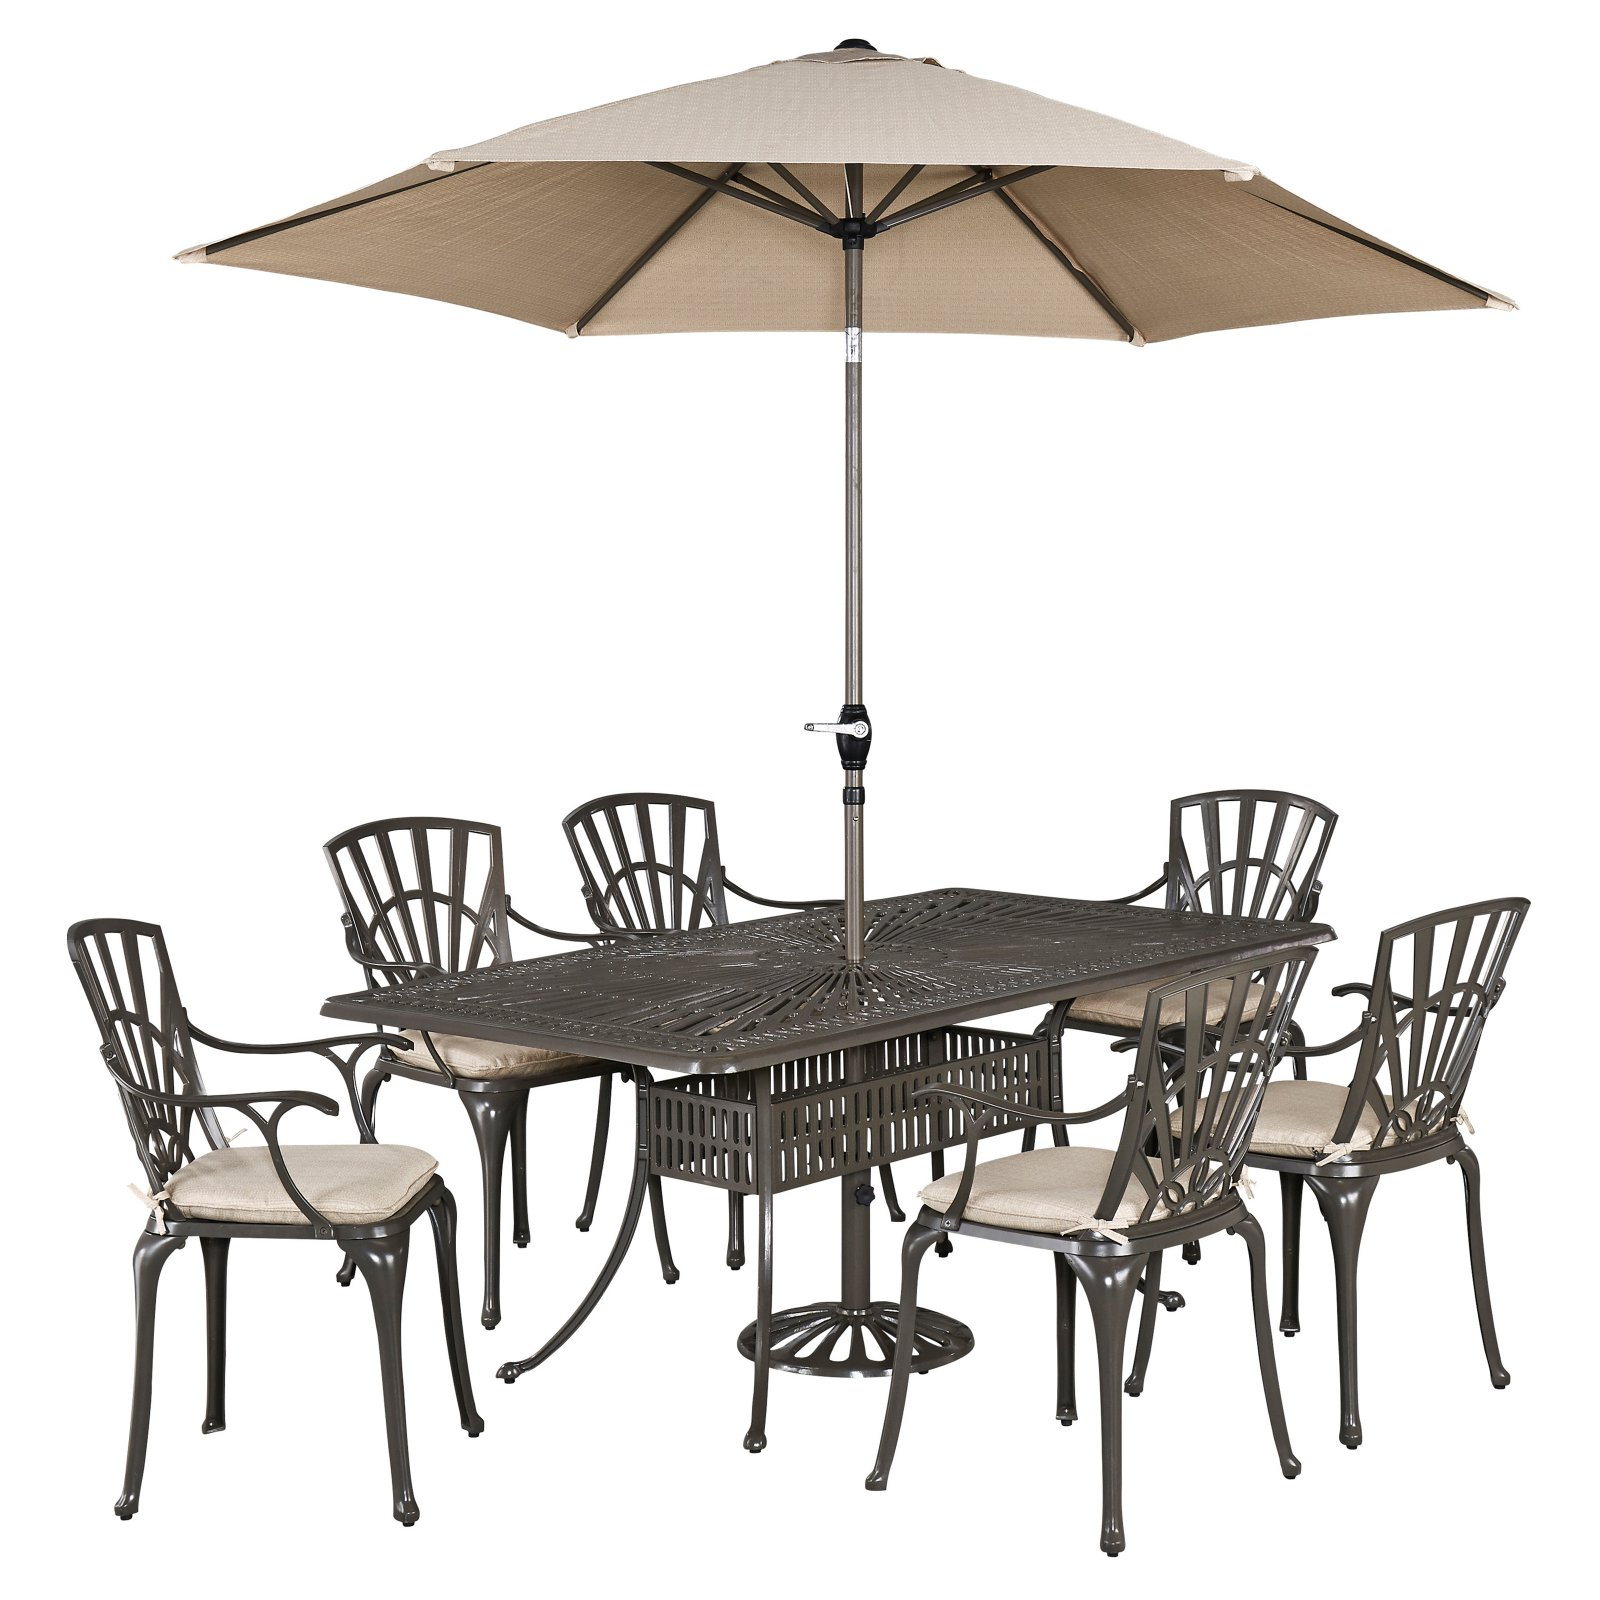 Home Styles Largo 7pc Outdoor Dining Room Set Includes Rectangular Table and 6 Armchairs by Home Styles